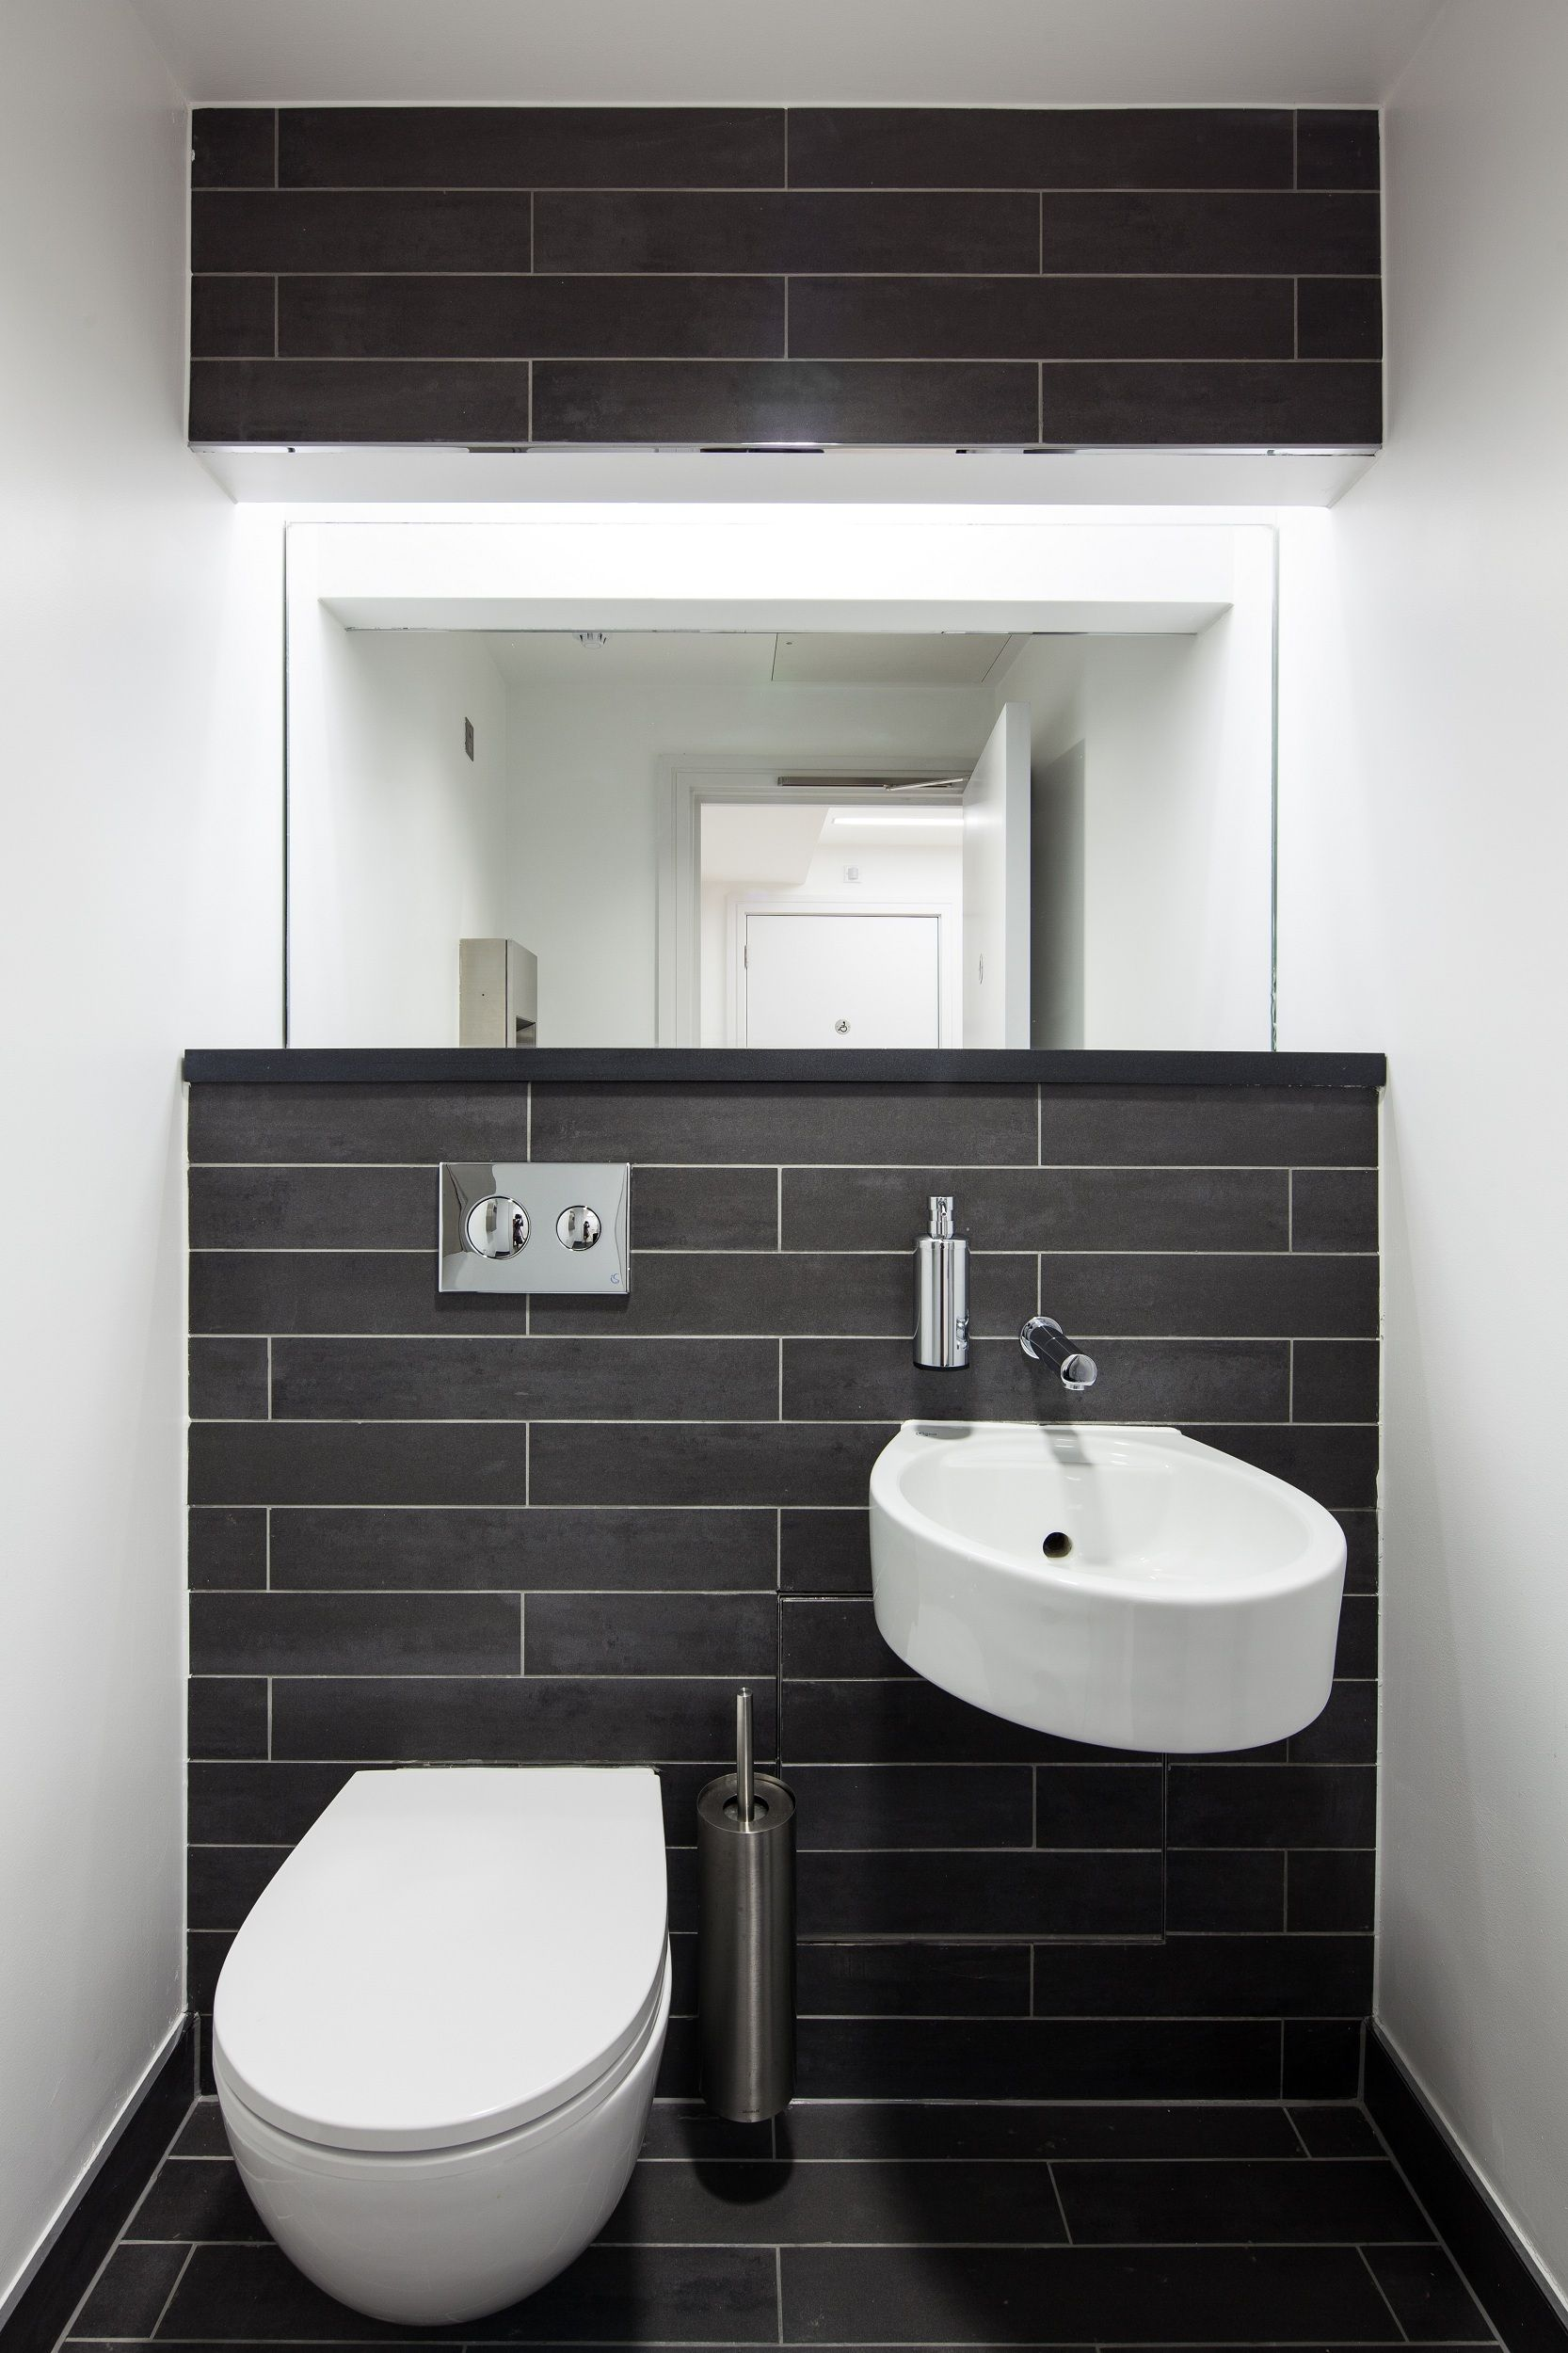 Office Bathroom Designs Office Restroom  Slingsby Place  Bathroom  Pinterest  Bath